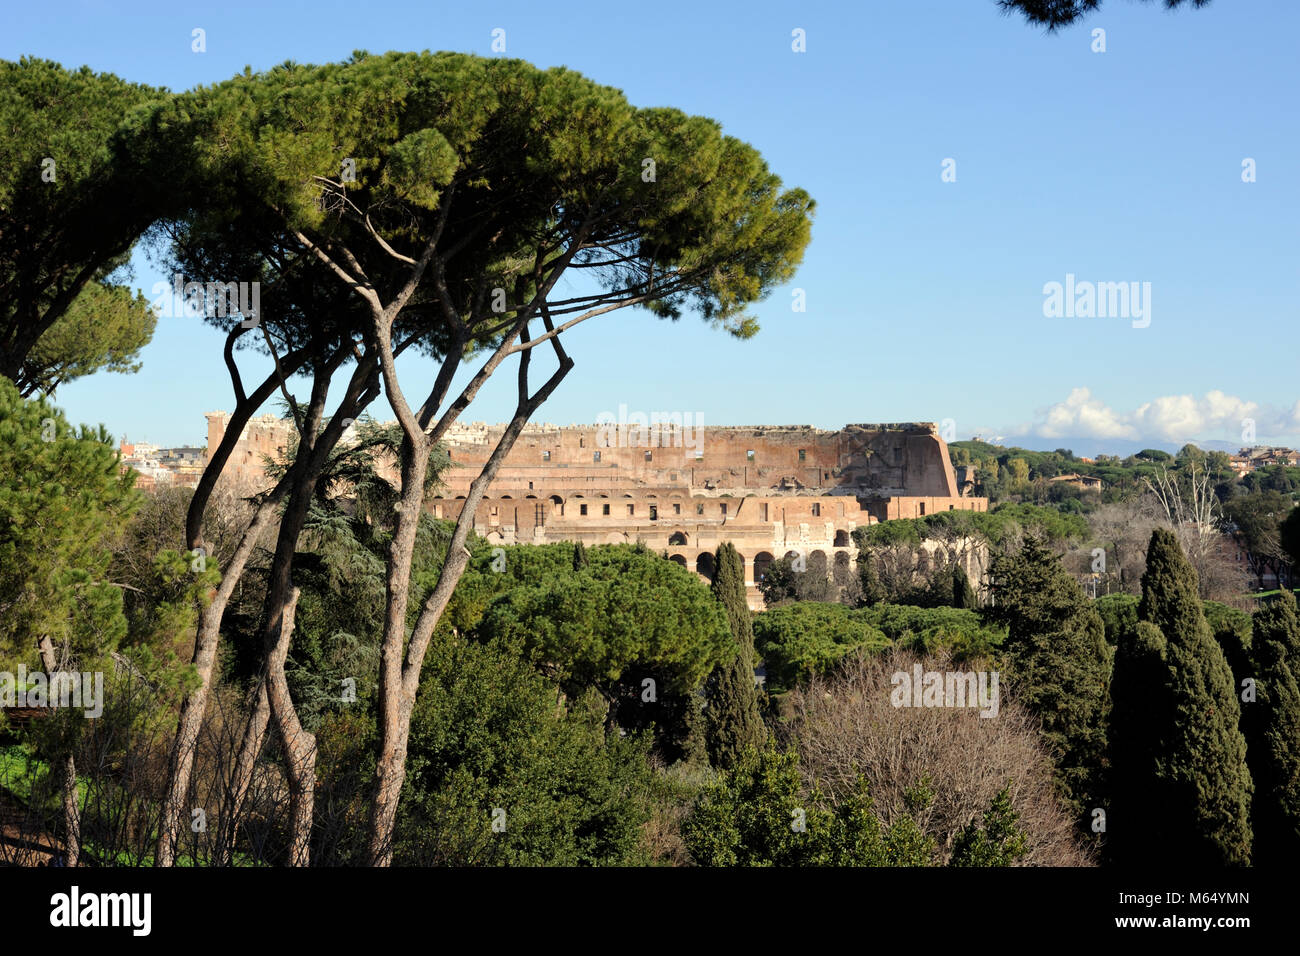 italy, rome, colosseum - Stock Image